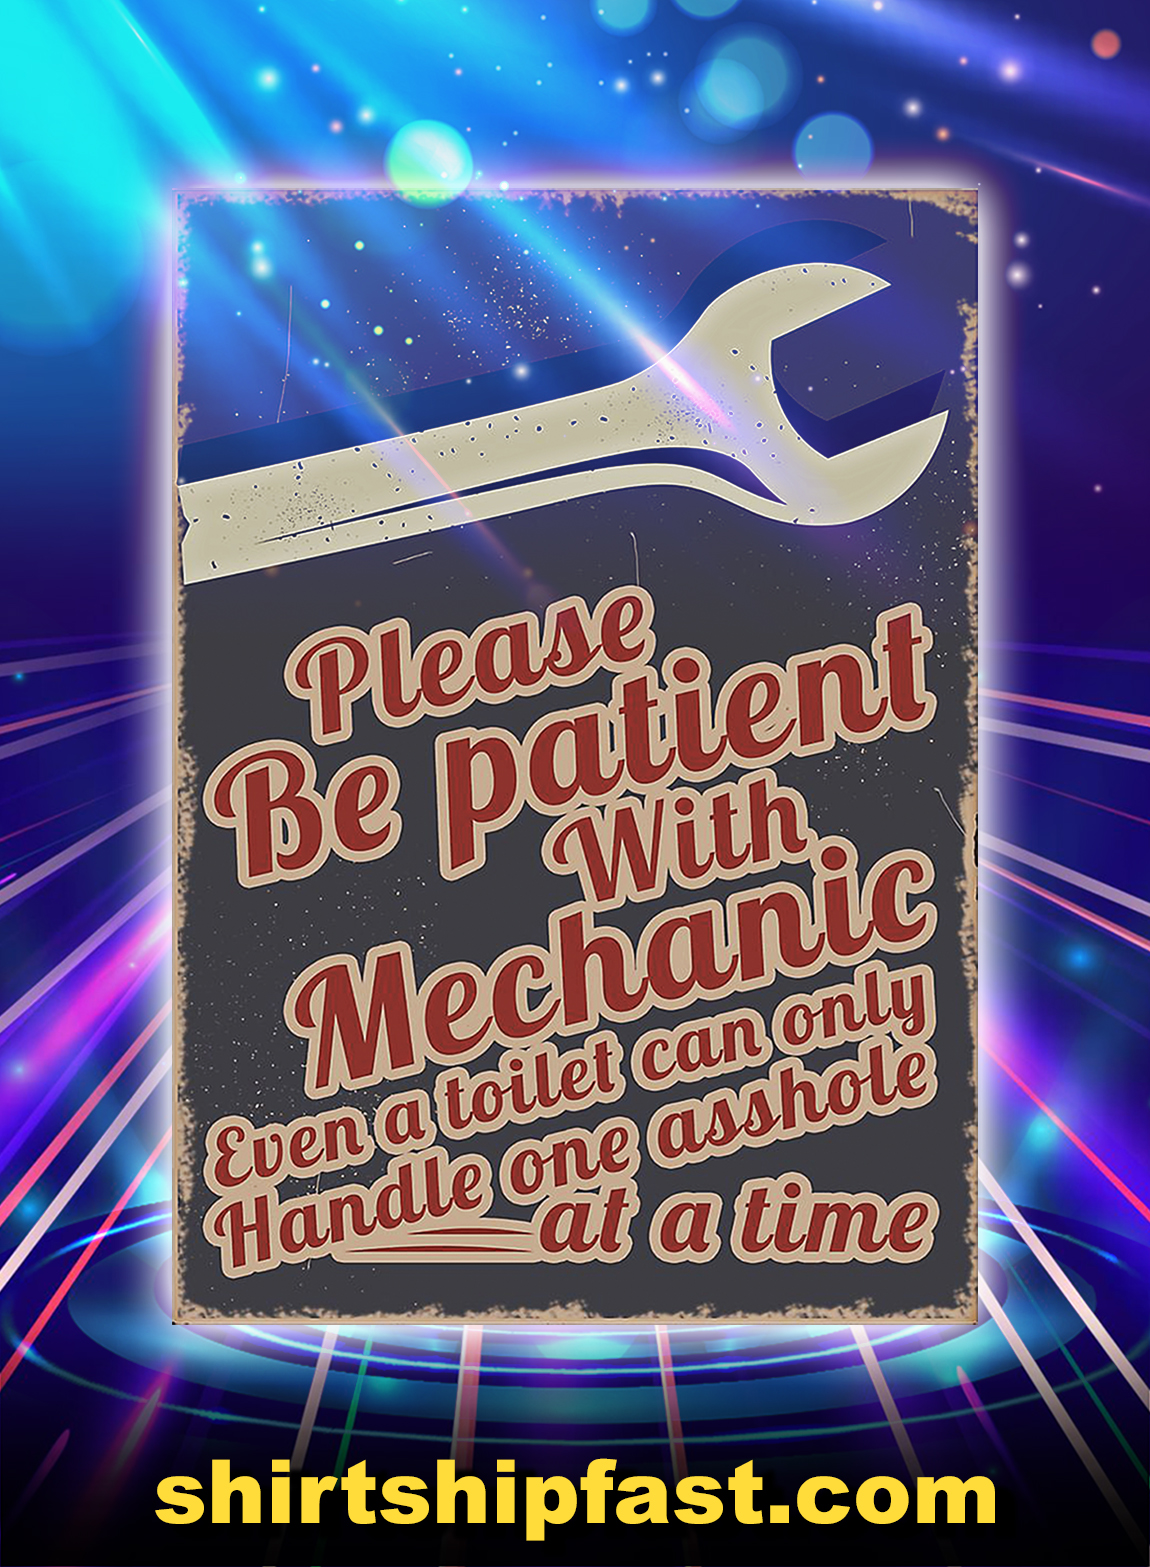 Please Be Patient With Mechanic Poster - A3